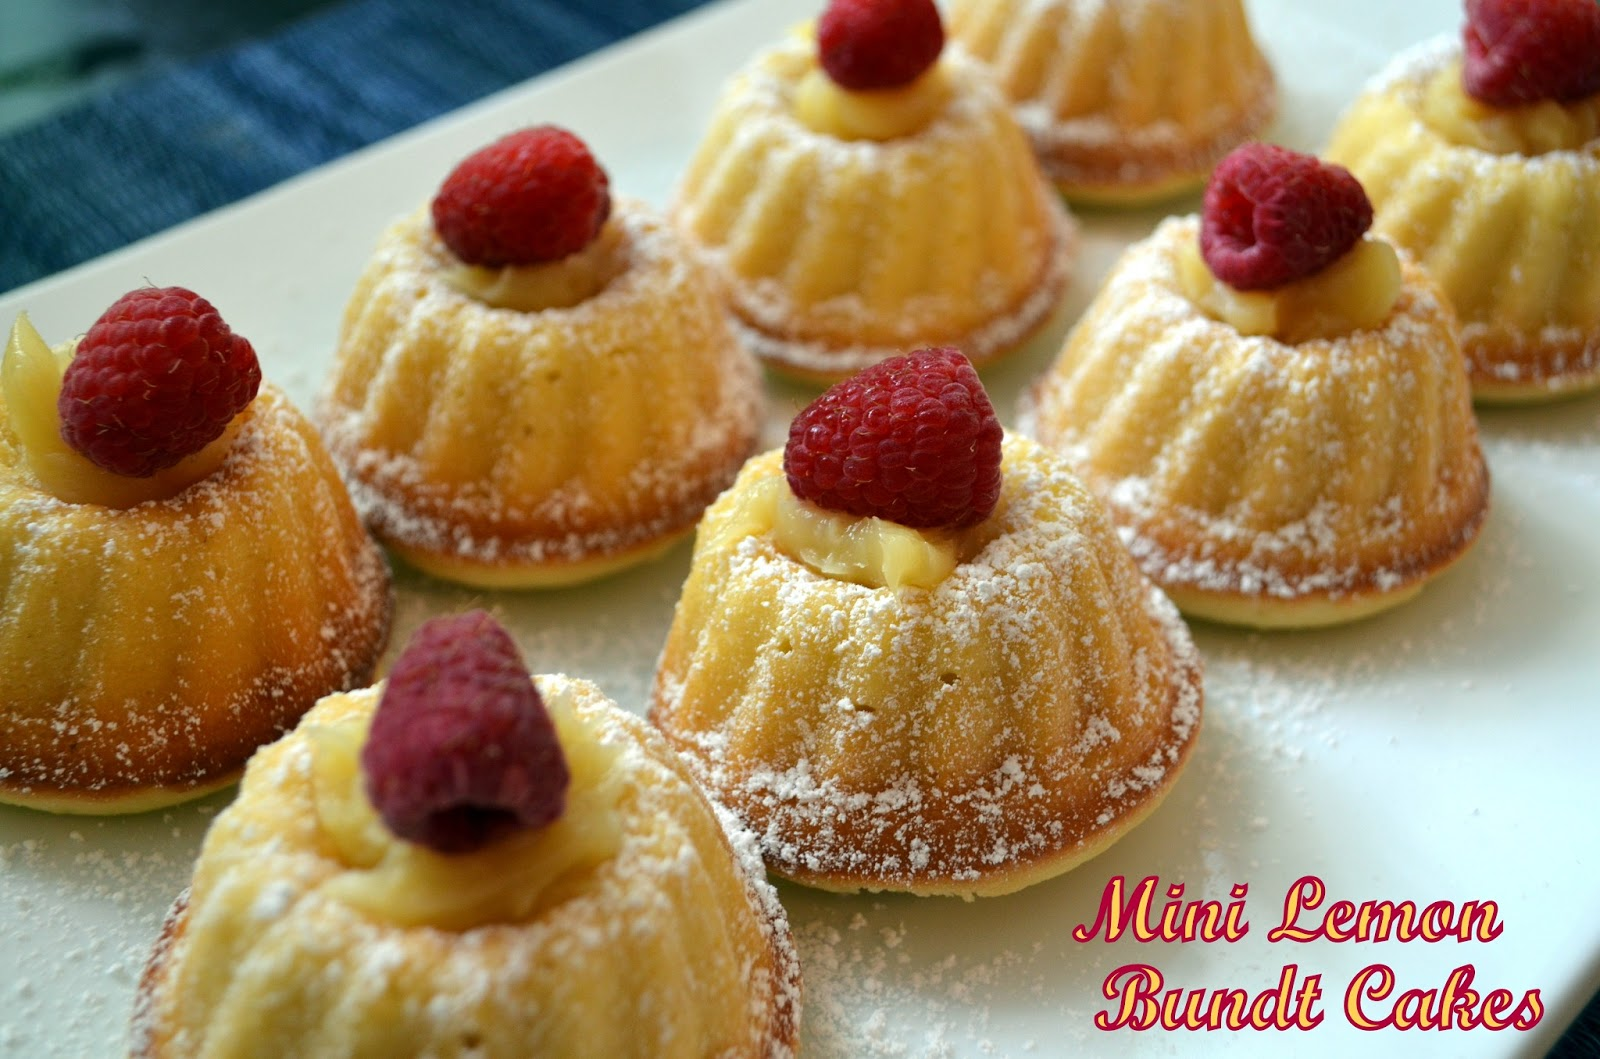 9 Photos of Mini Bundt Cakes